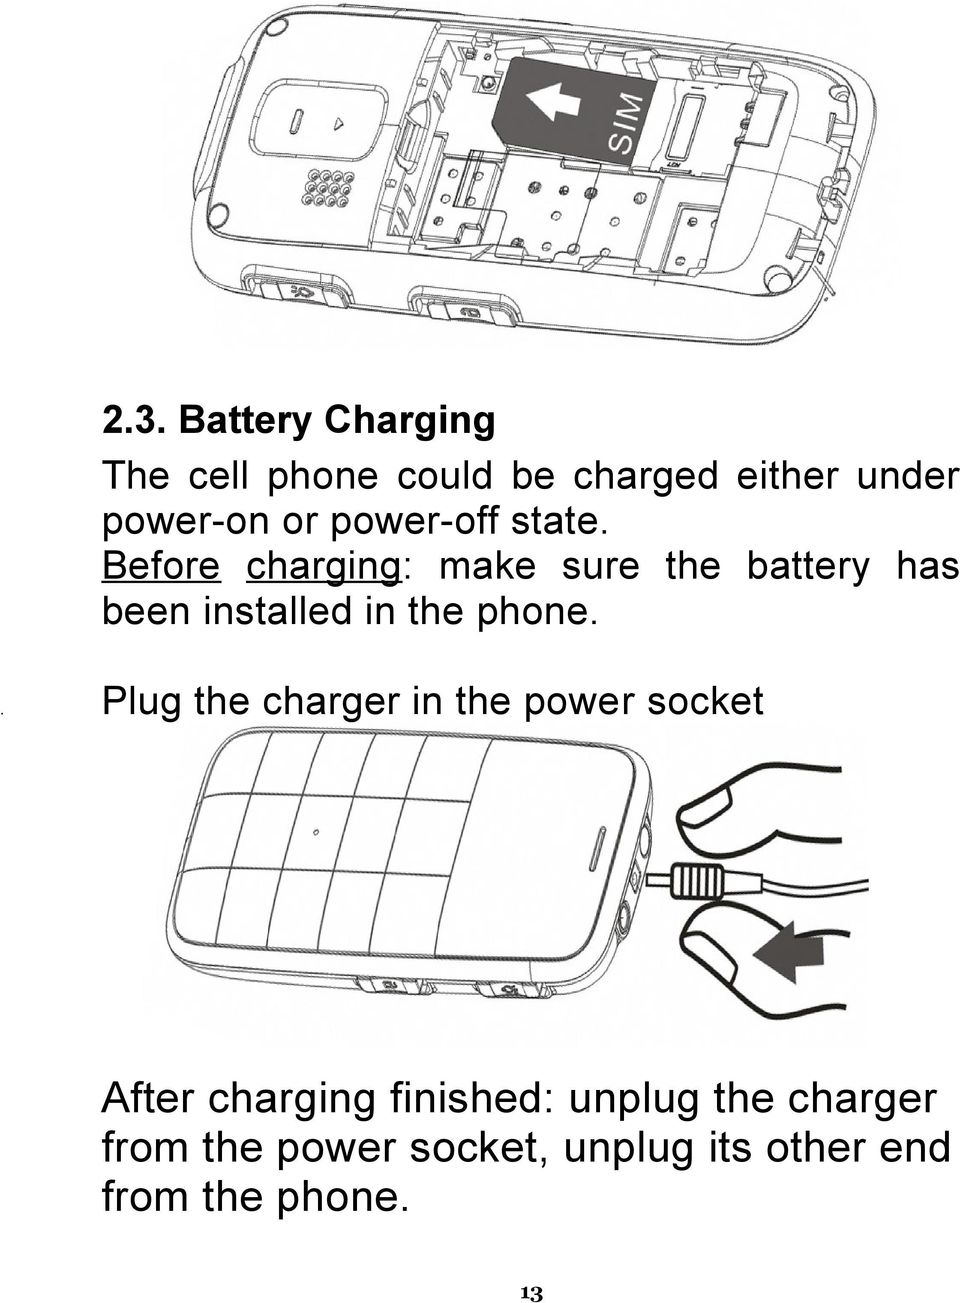 Before charging : make sure the battery has been installed in the phone.